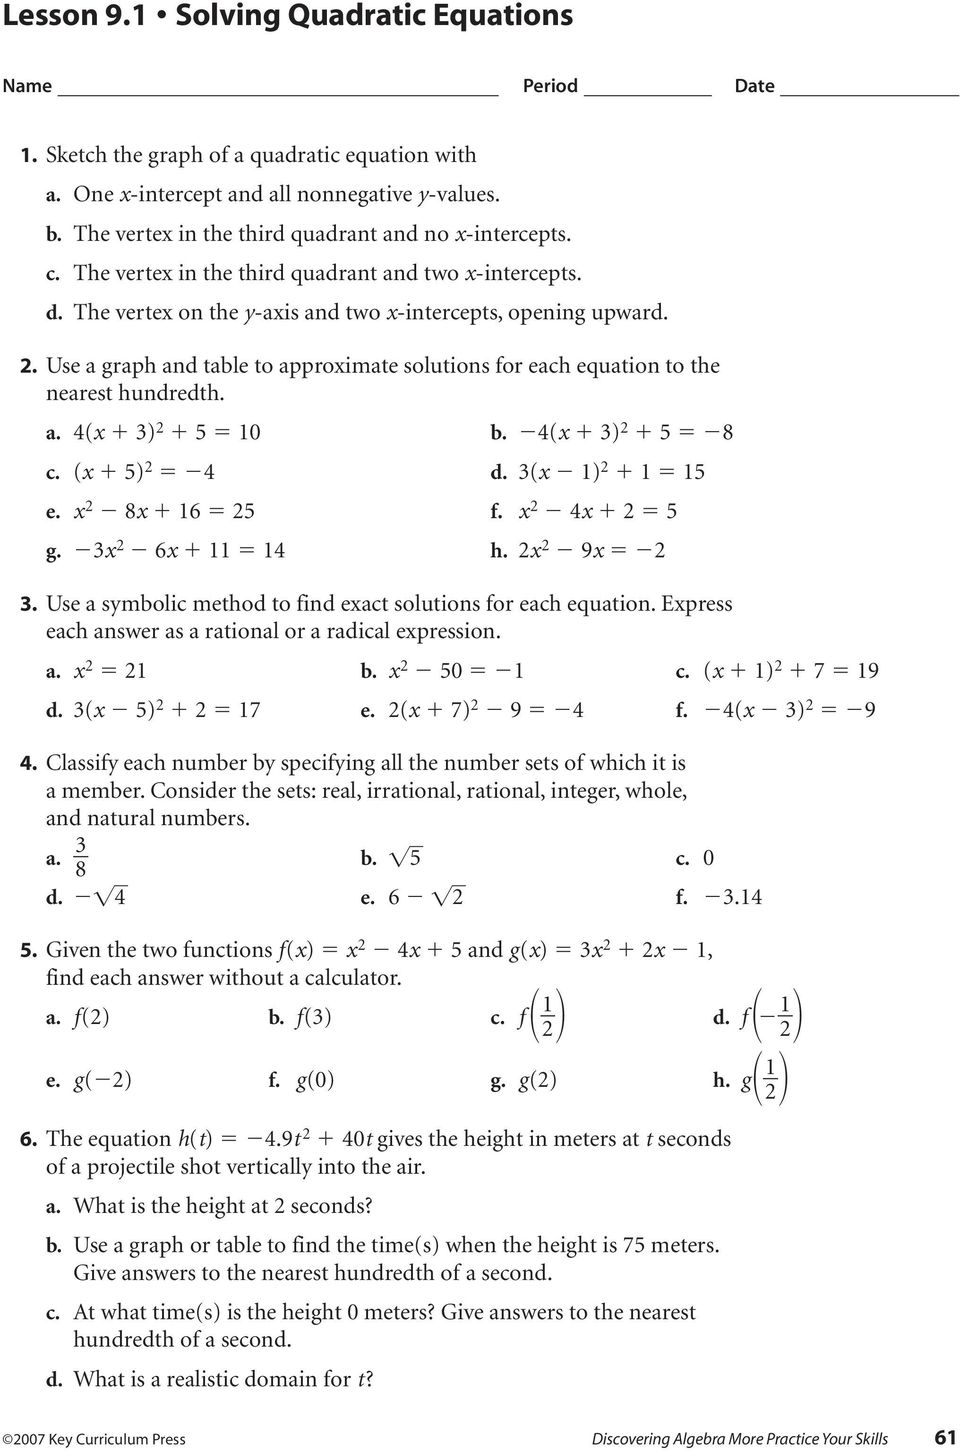 Lesson 9 1 Solving Quadratic Equations - PDF